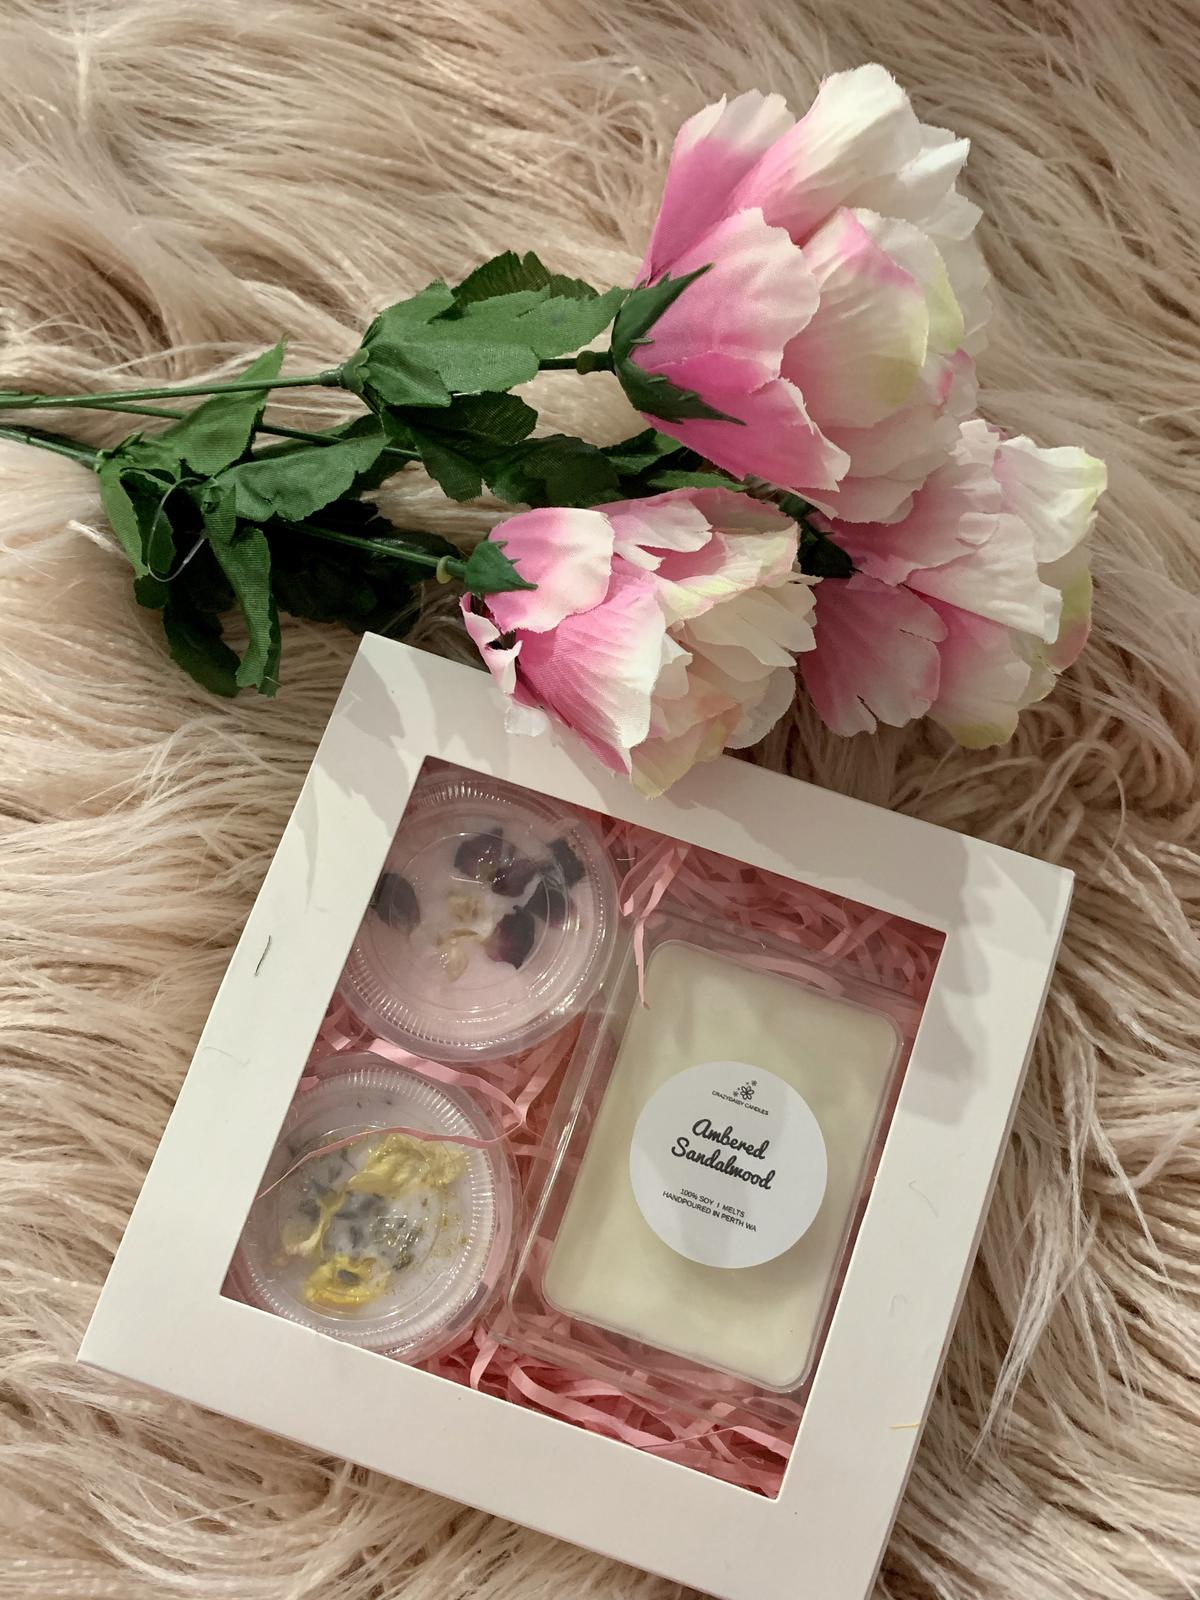 Soy Wax Melt Gift Sets